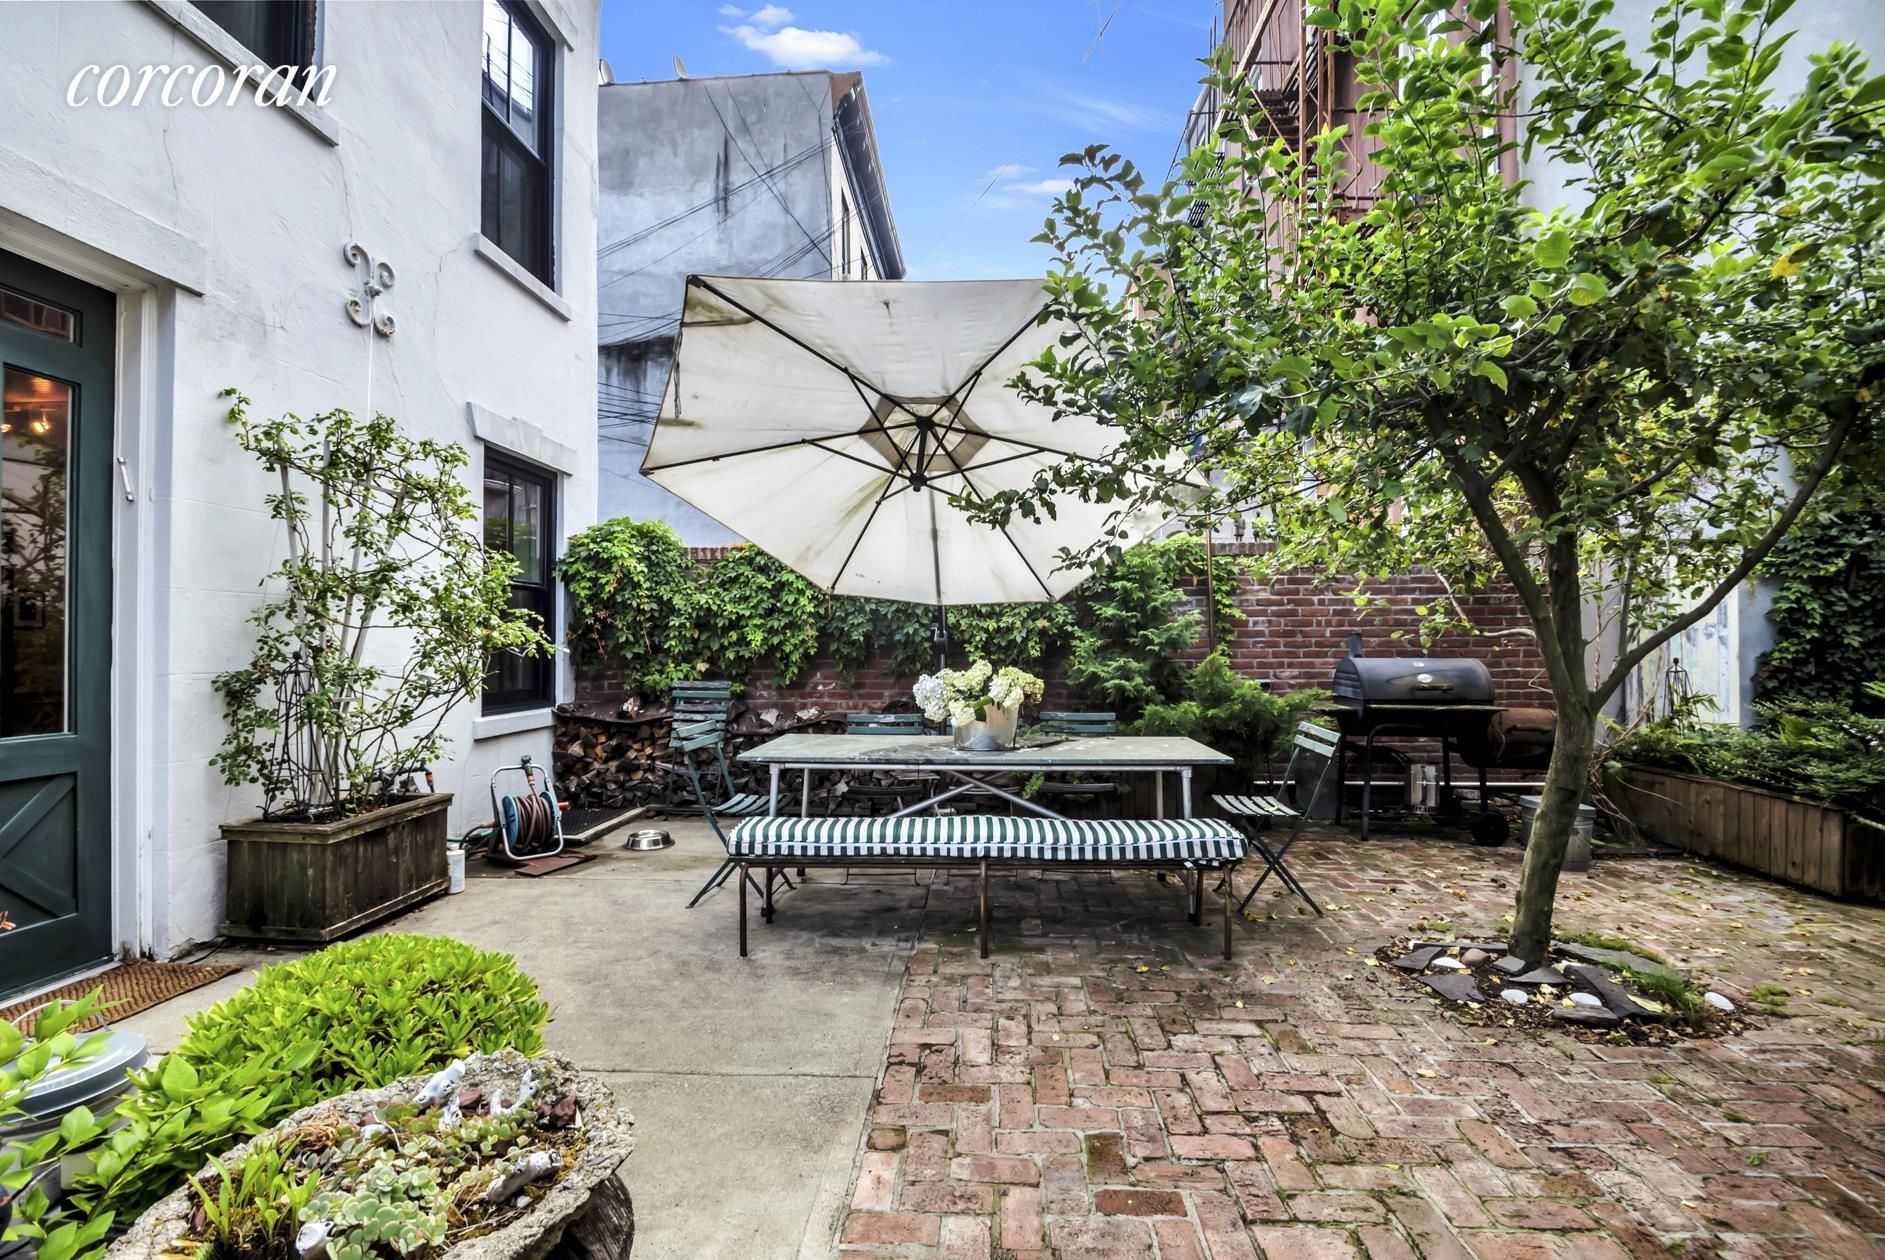 561 Union St Photo 18 - NYC-Real-Estate-668587